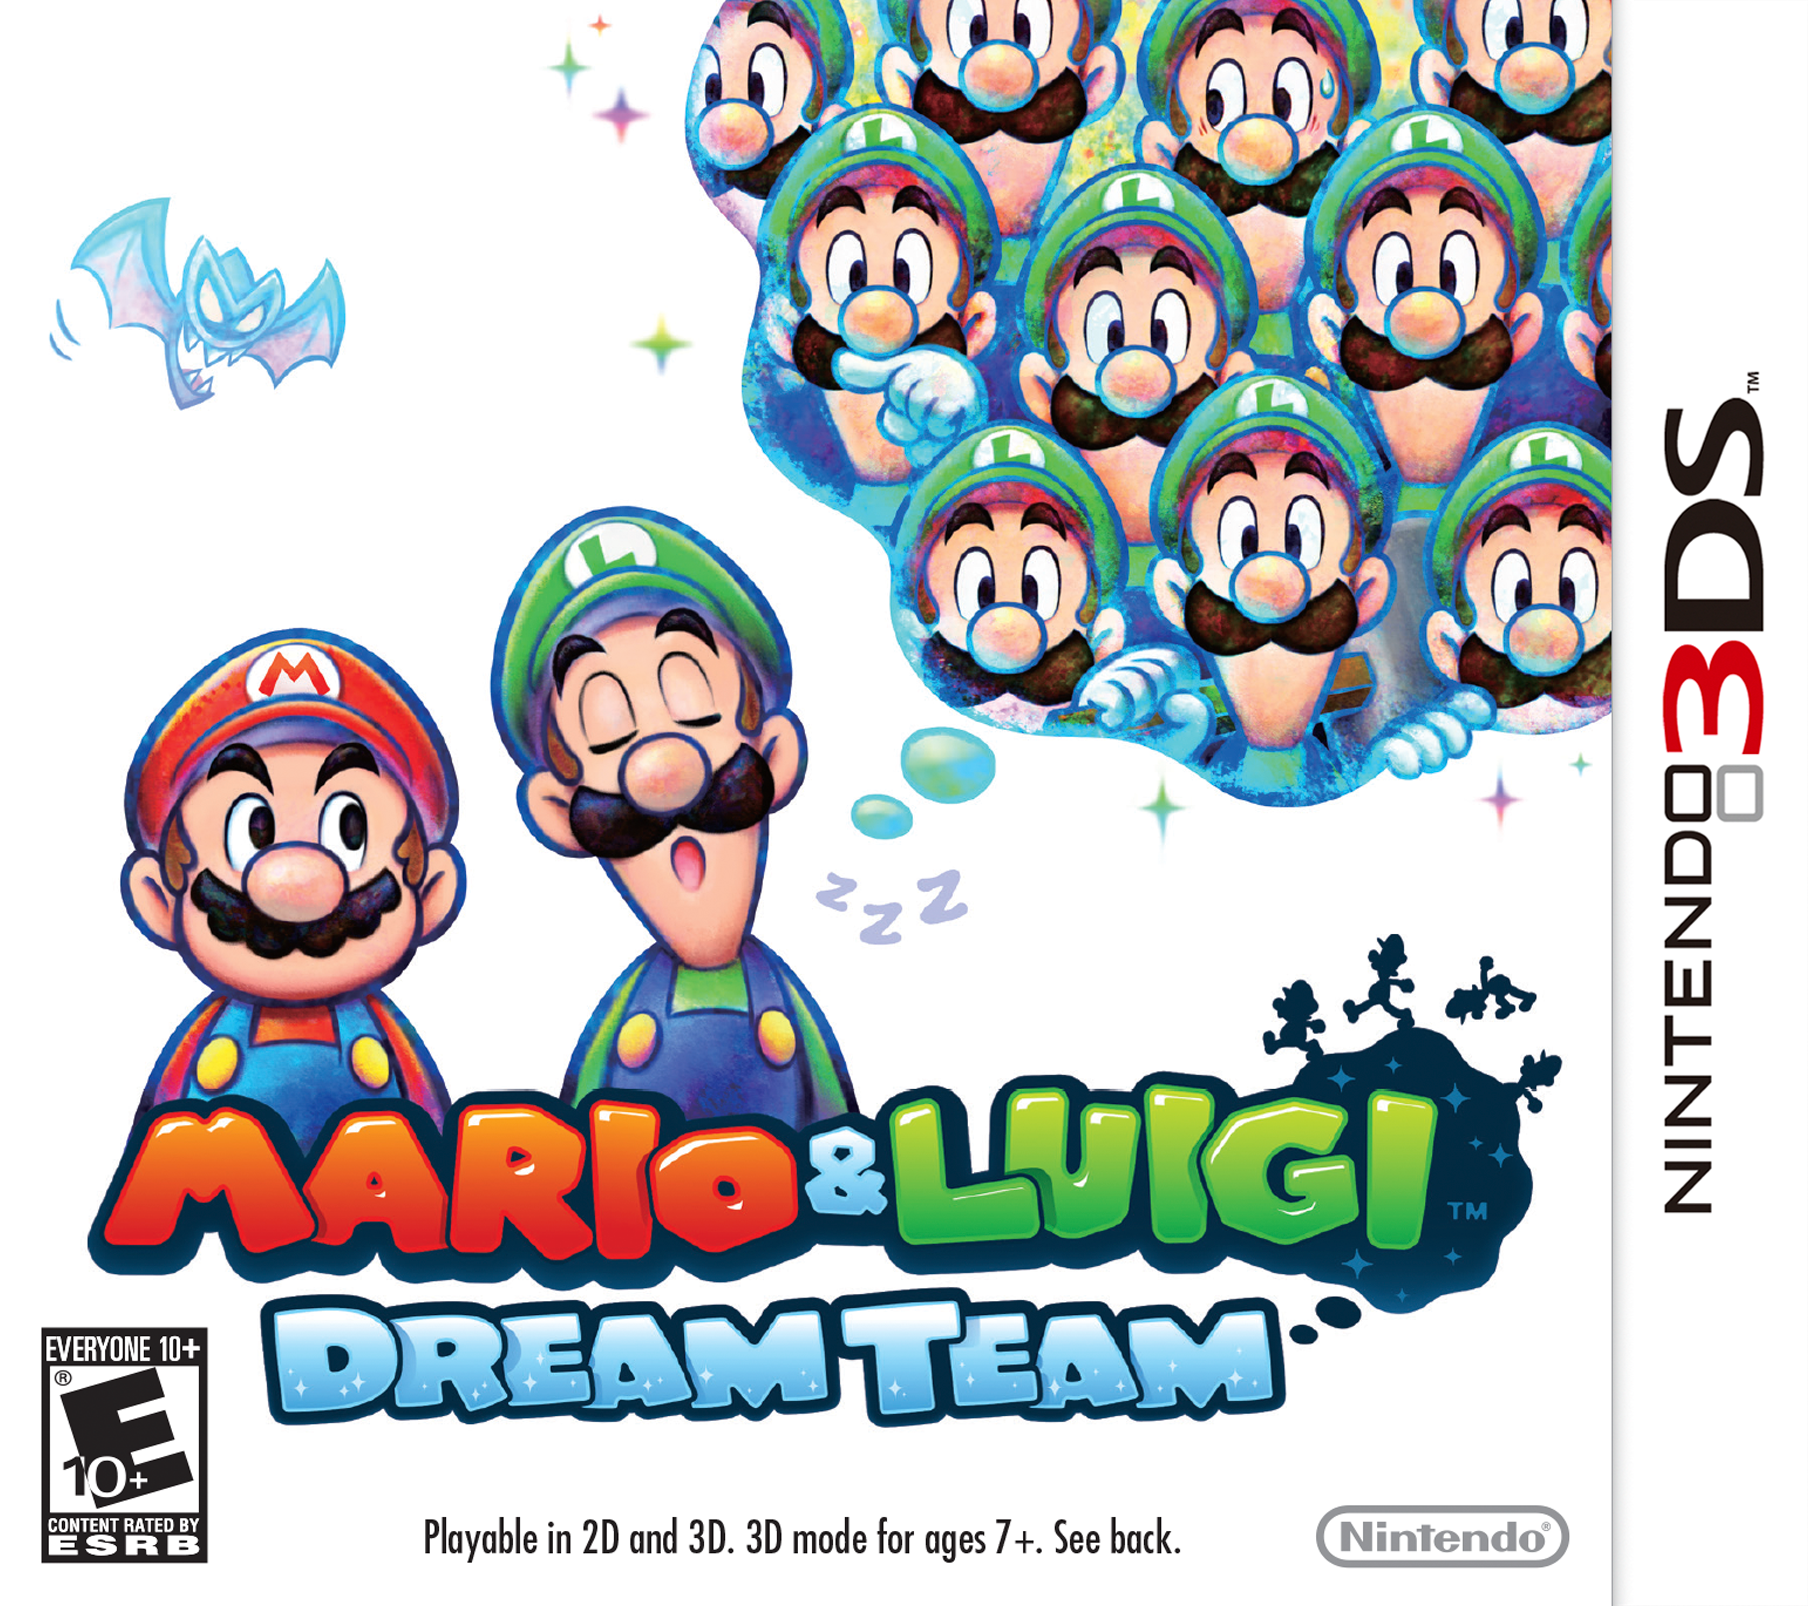 Box artwork for Mario & Luigi: Dream Team.